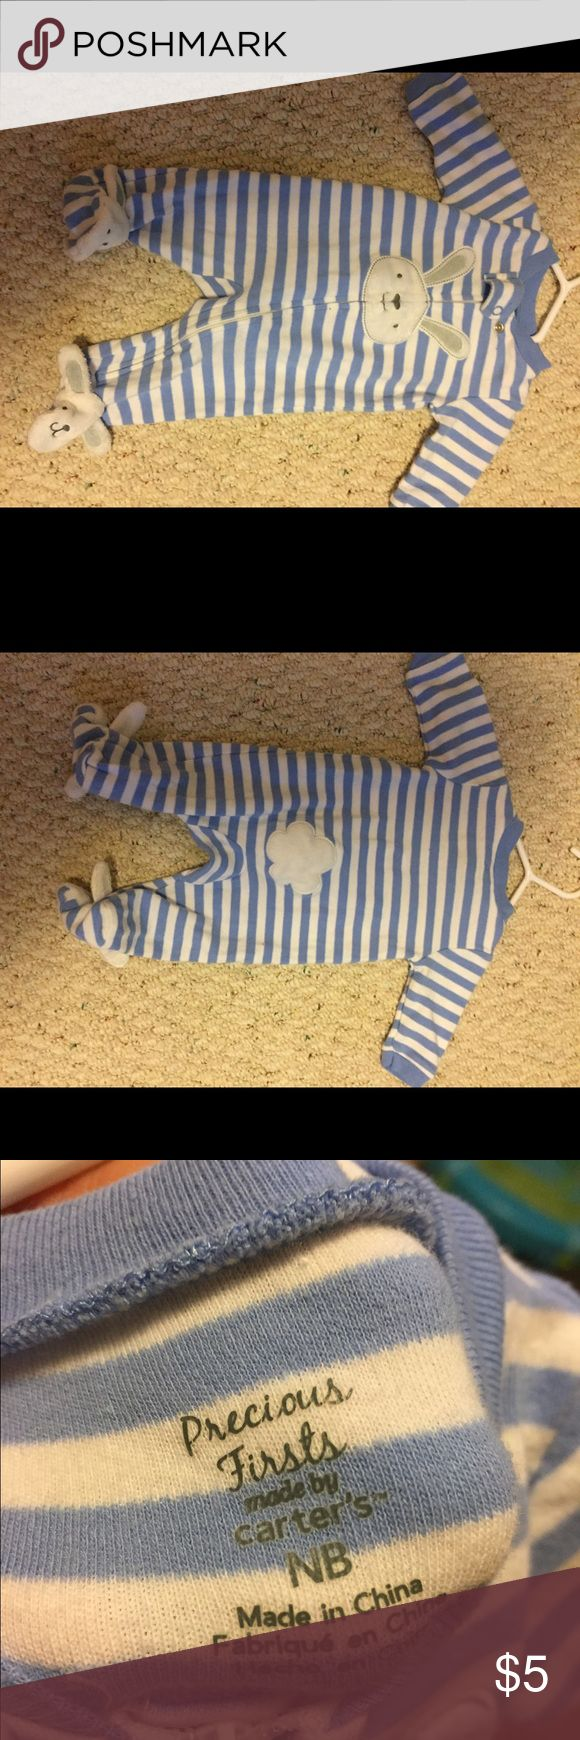 ADORABLE Newborn Boy Outfit Cute Bunny There are bunnies on the feet and a bunny tail on the tushy!!! Can you even stand it??? Boy clothes this cute are hard to find! Carter's One Pieces Footies